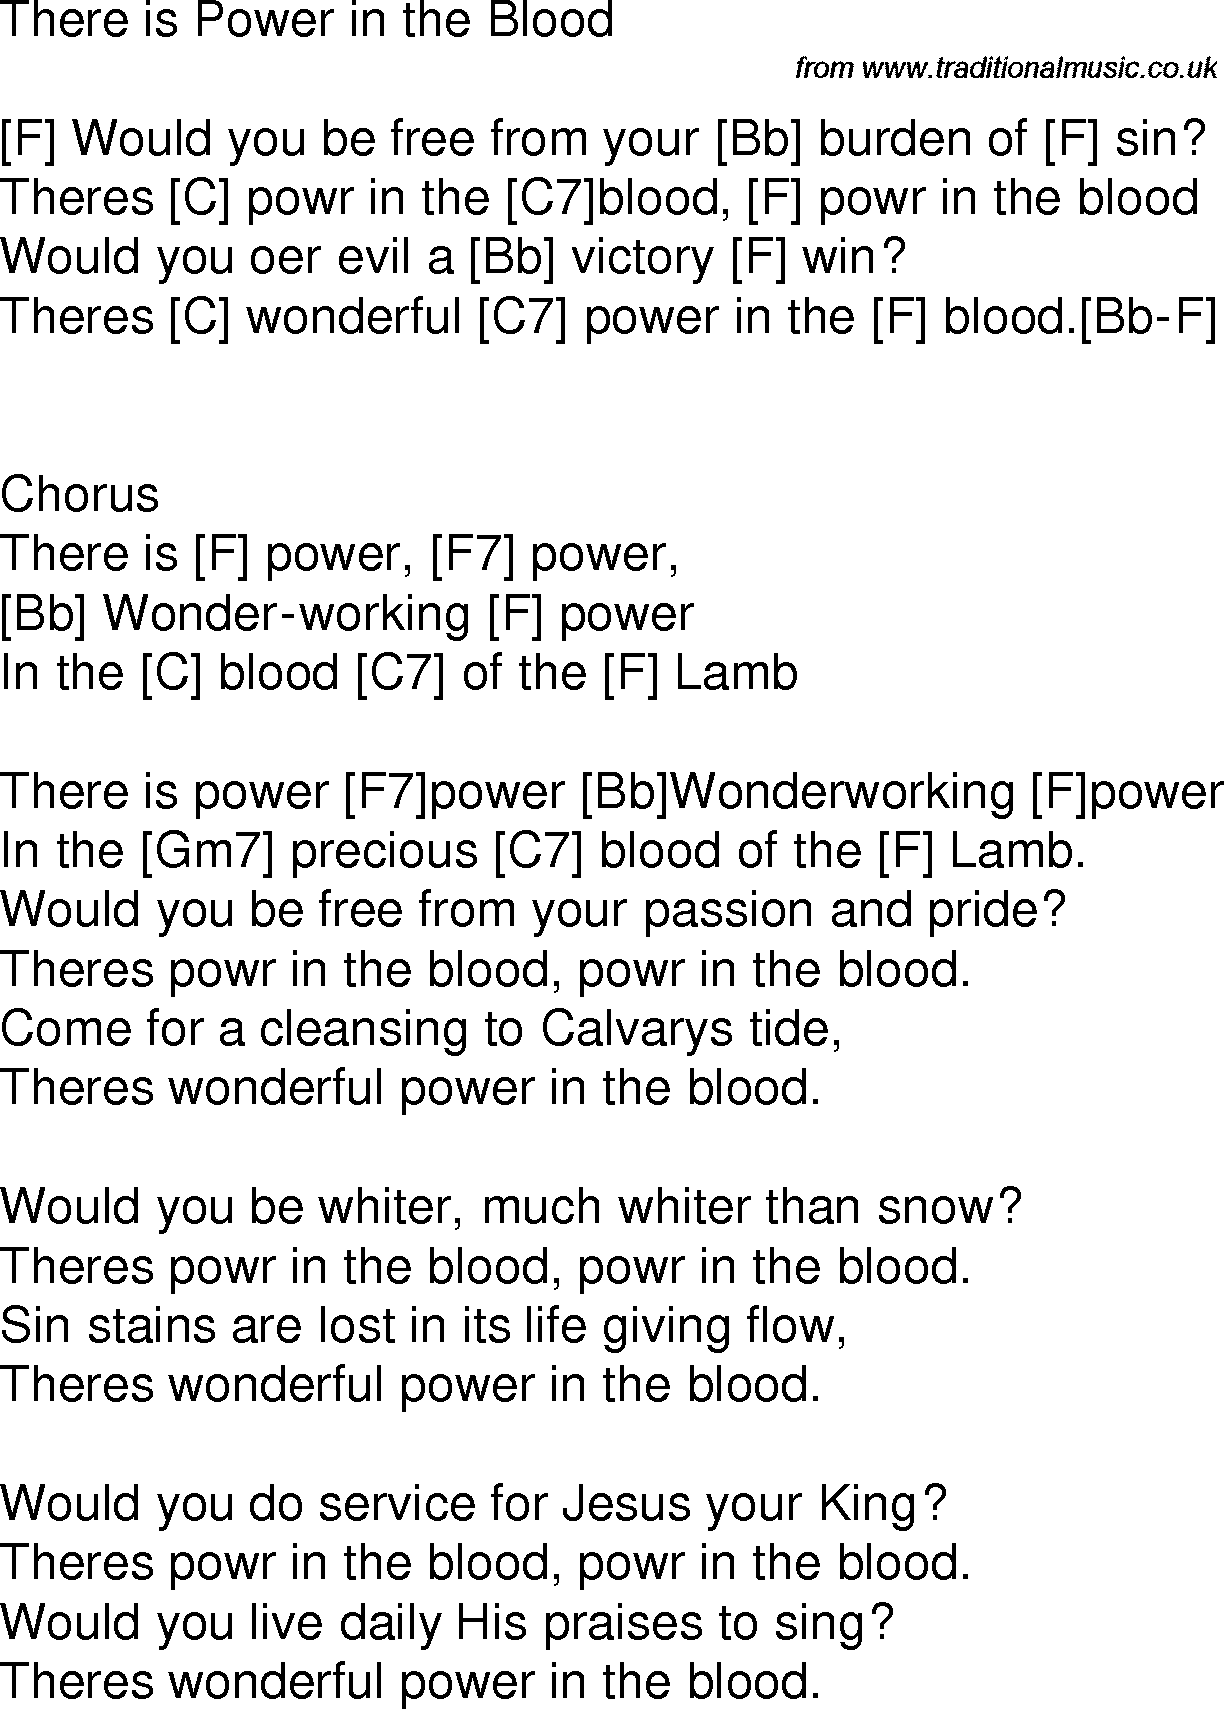 Old time song lyrics with chords for blessed assurance c banjo old time song lyrics with chords for power in the blood f hexwebz Gallery